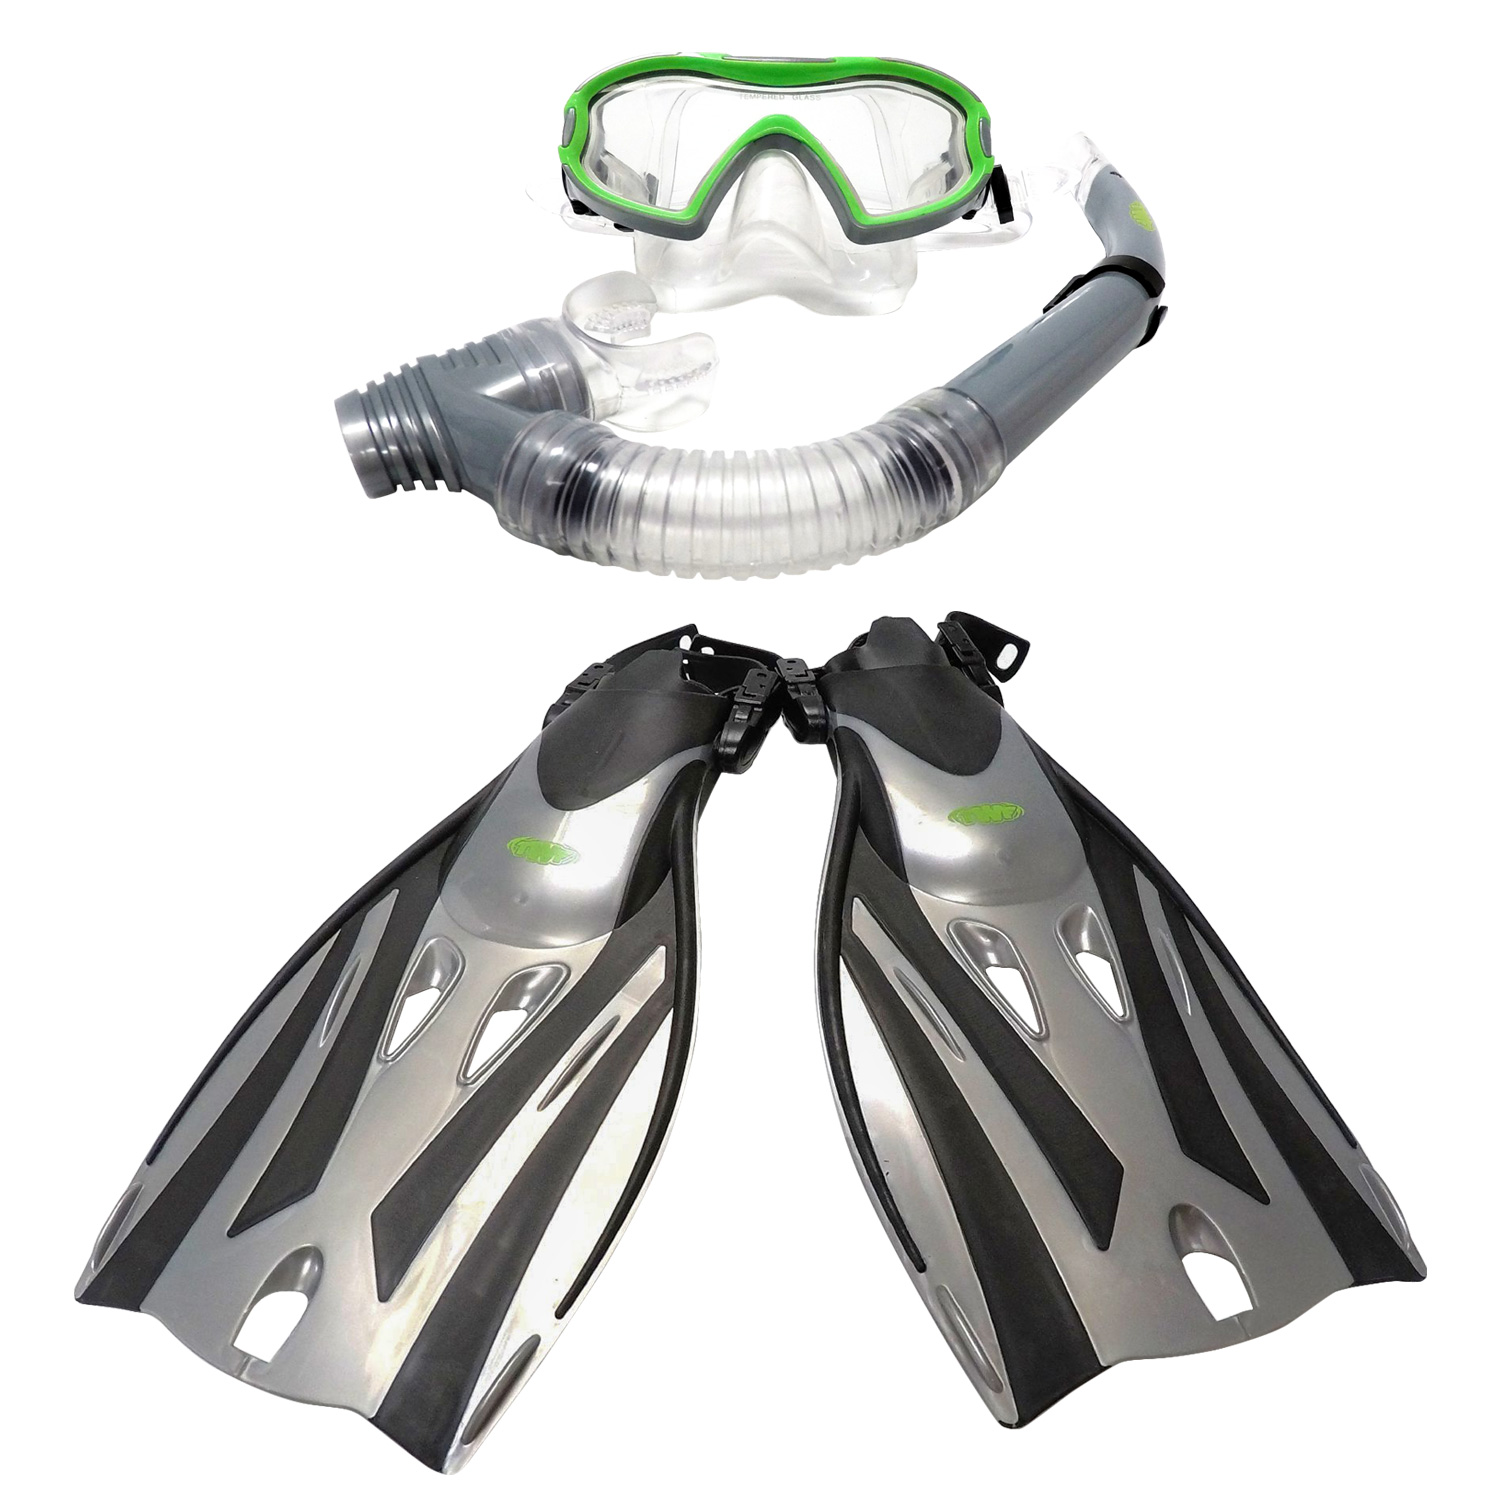 2 x Childrens Snorkel /& Mask /& Flippers Swimming Set